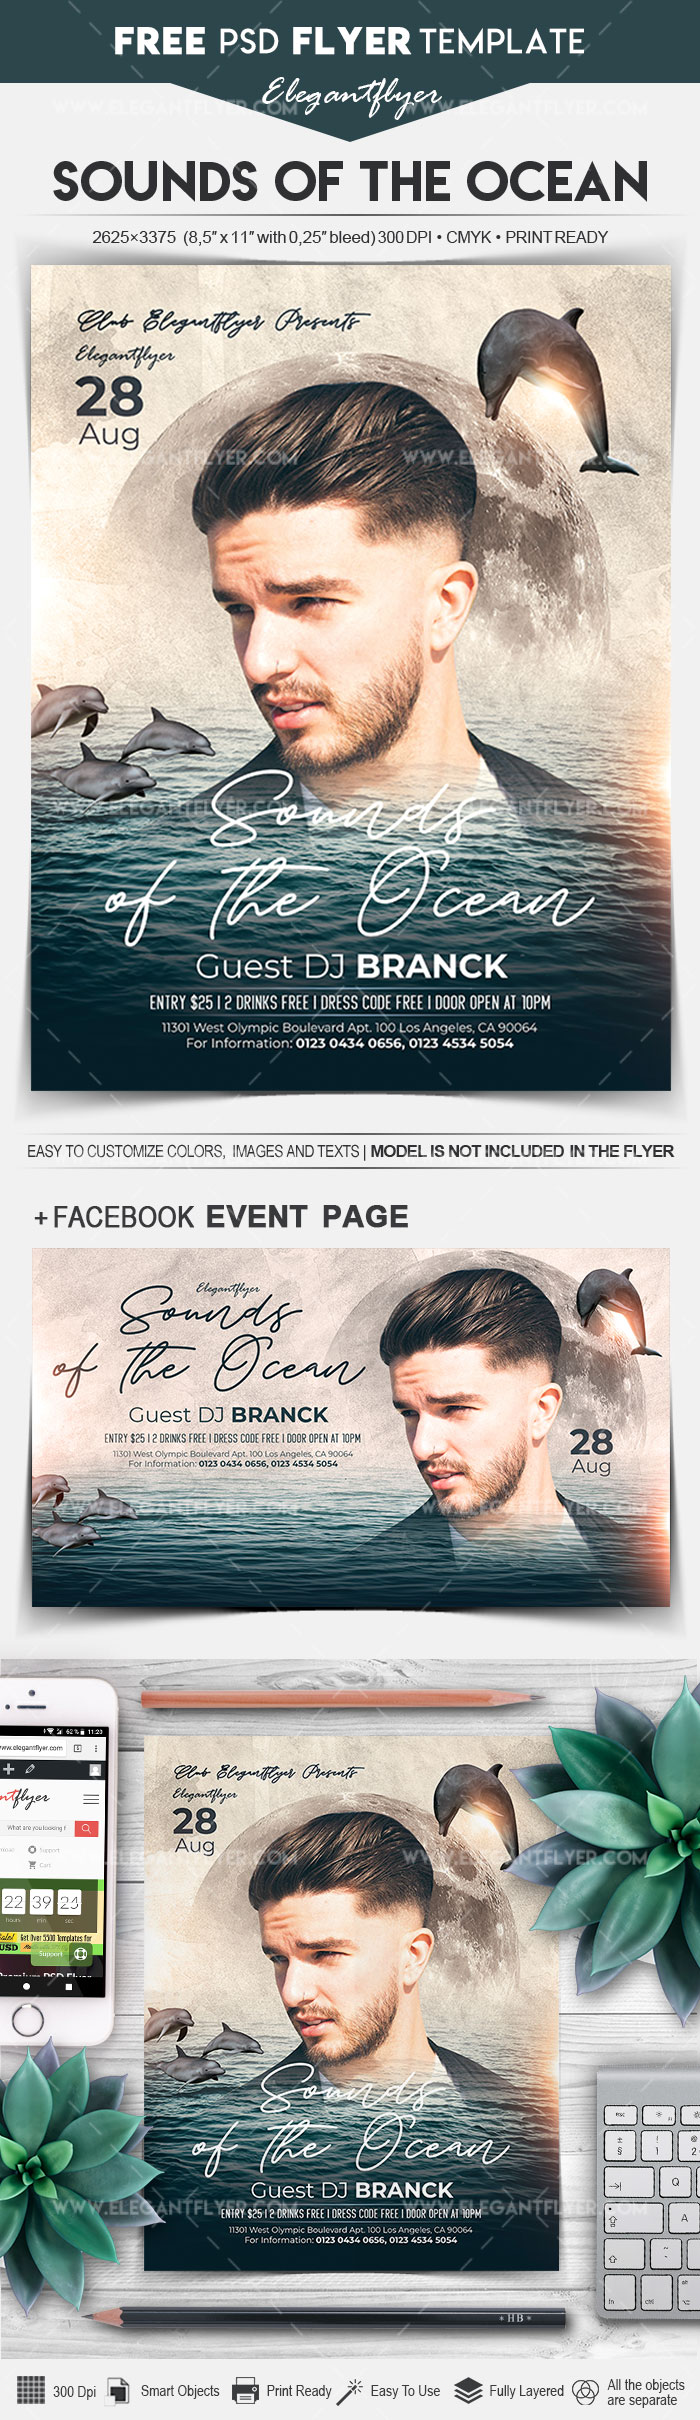 Sounds of the Ocean – Free Flyer PSD Template